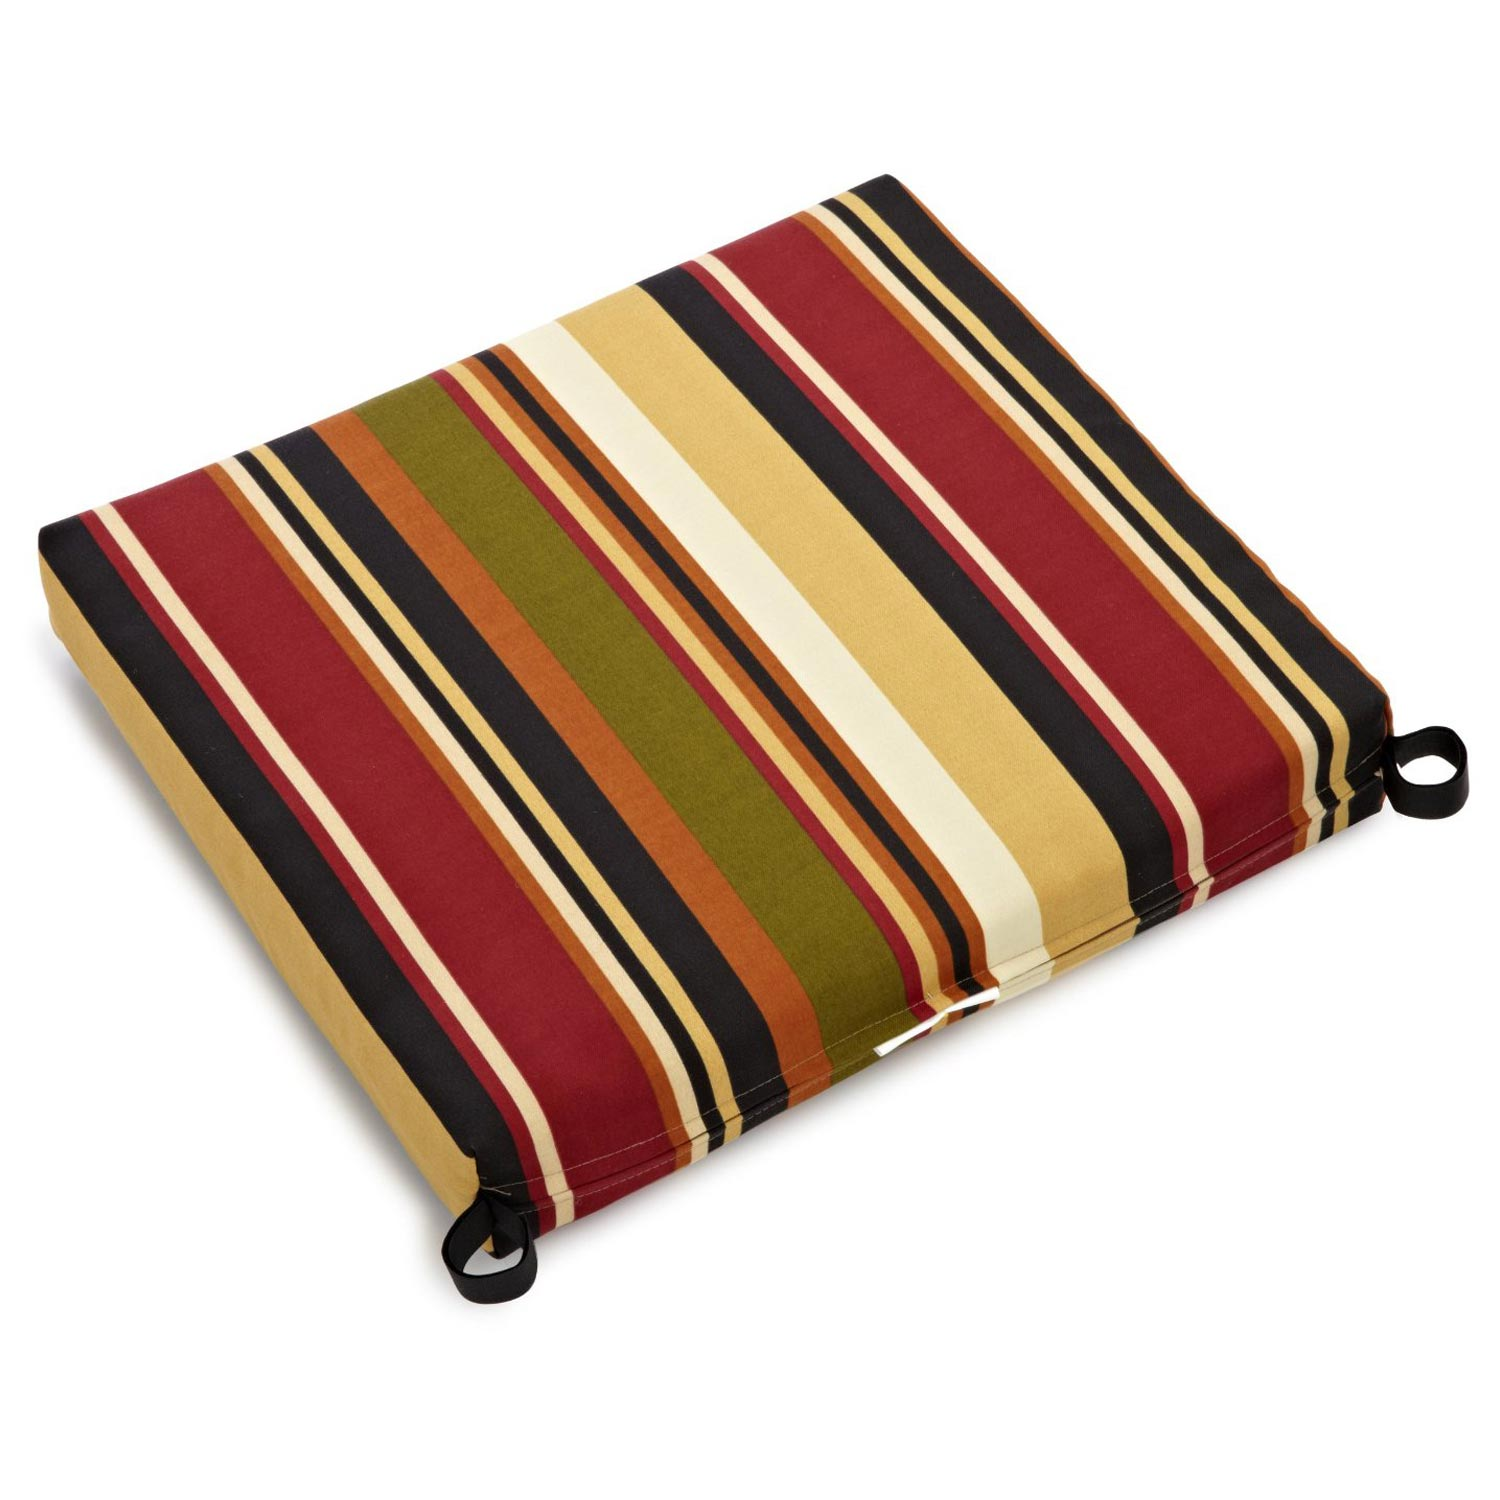 21 Quot X 19 Quot Patio Chair Cushion All Weather Patterned